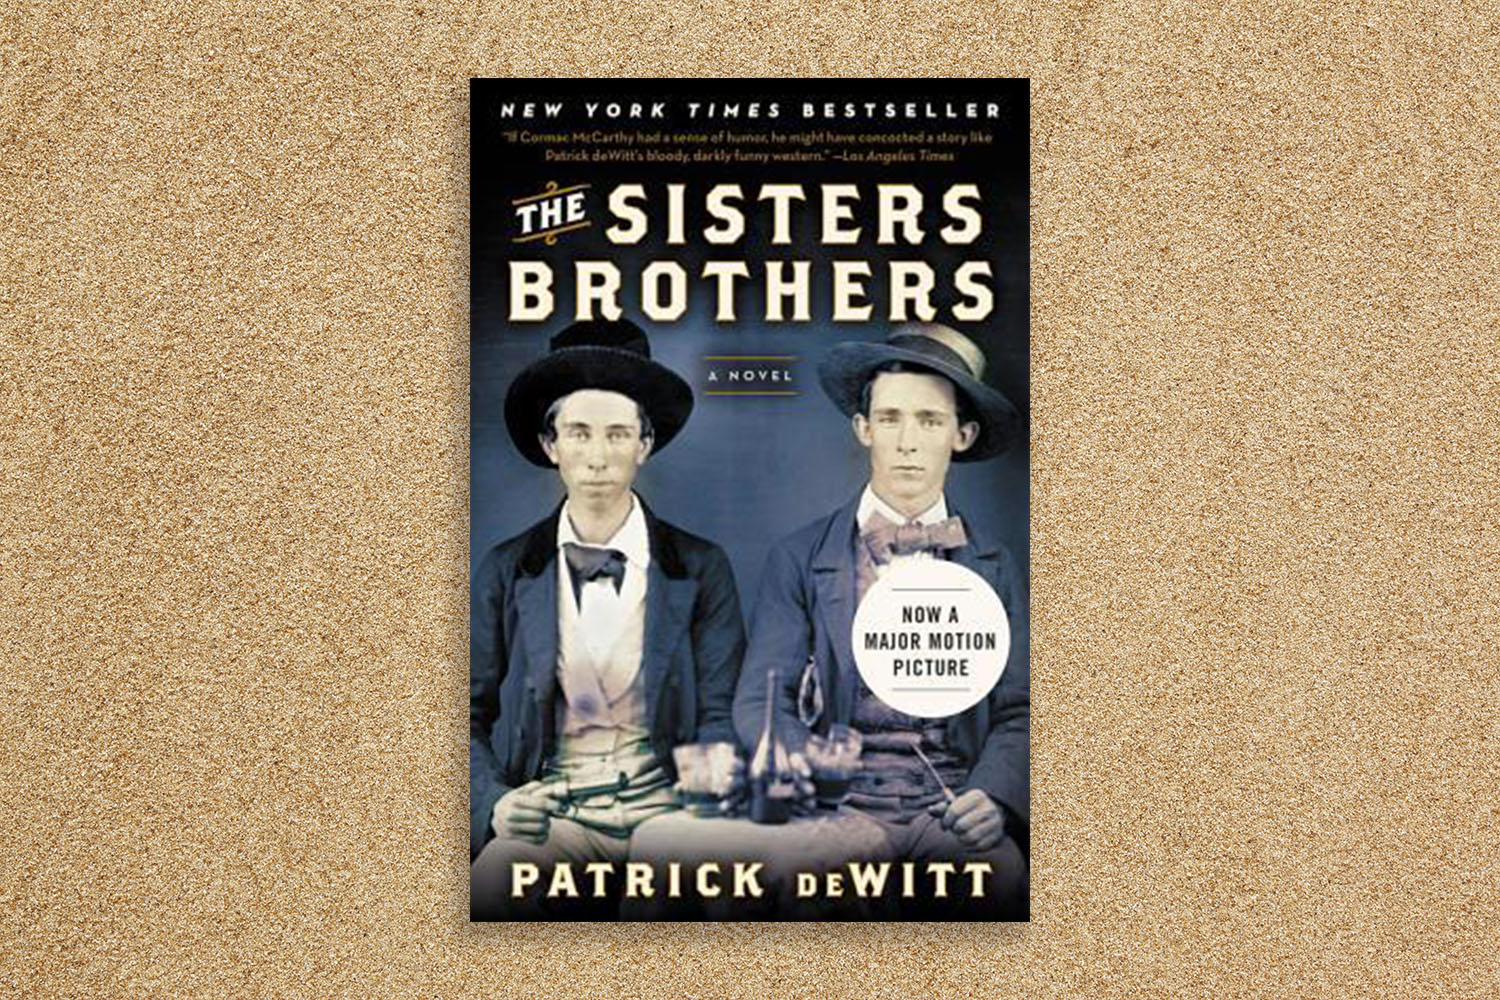 The Sisters Brothers cover.